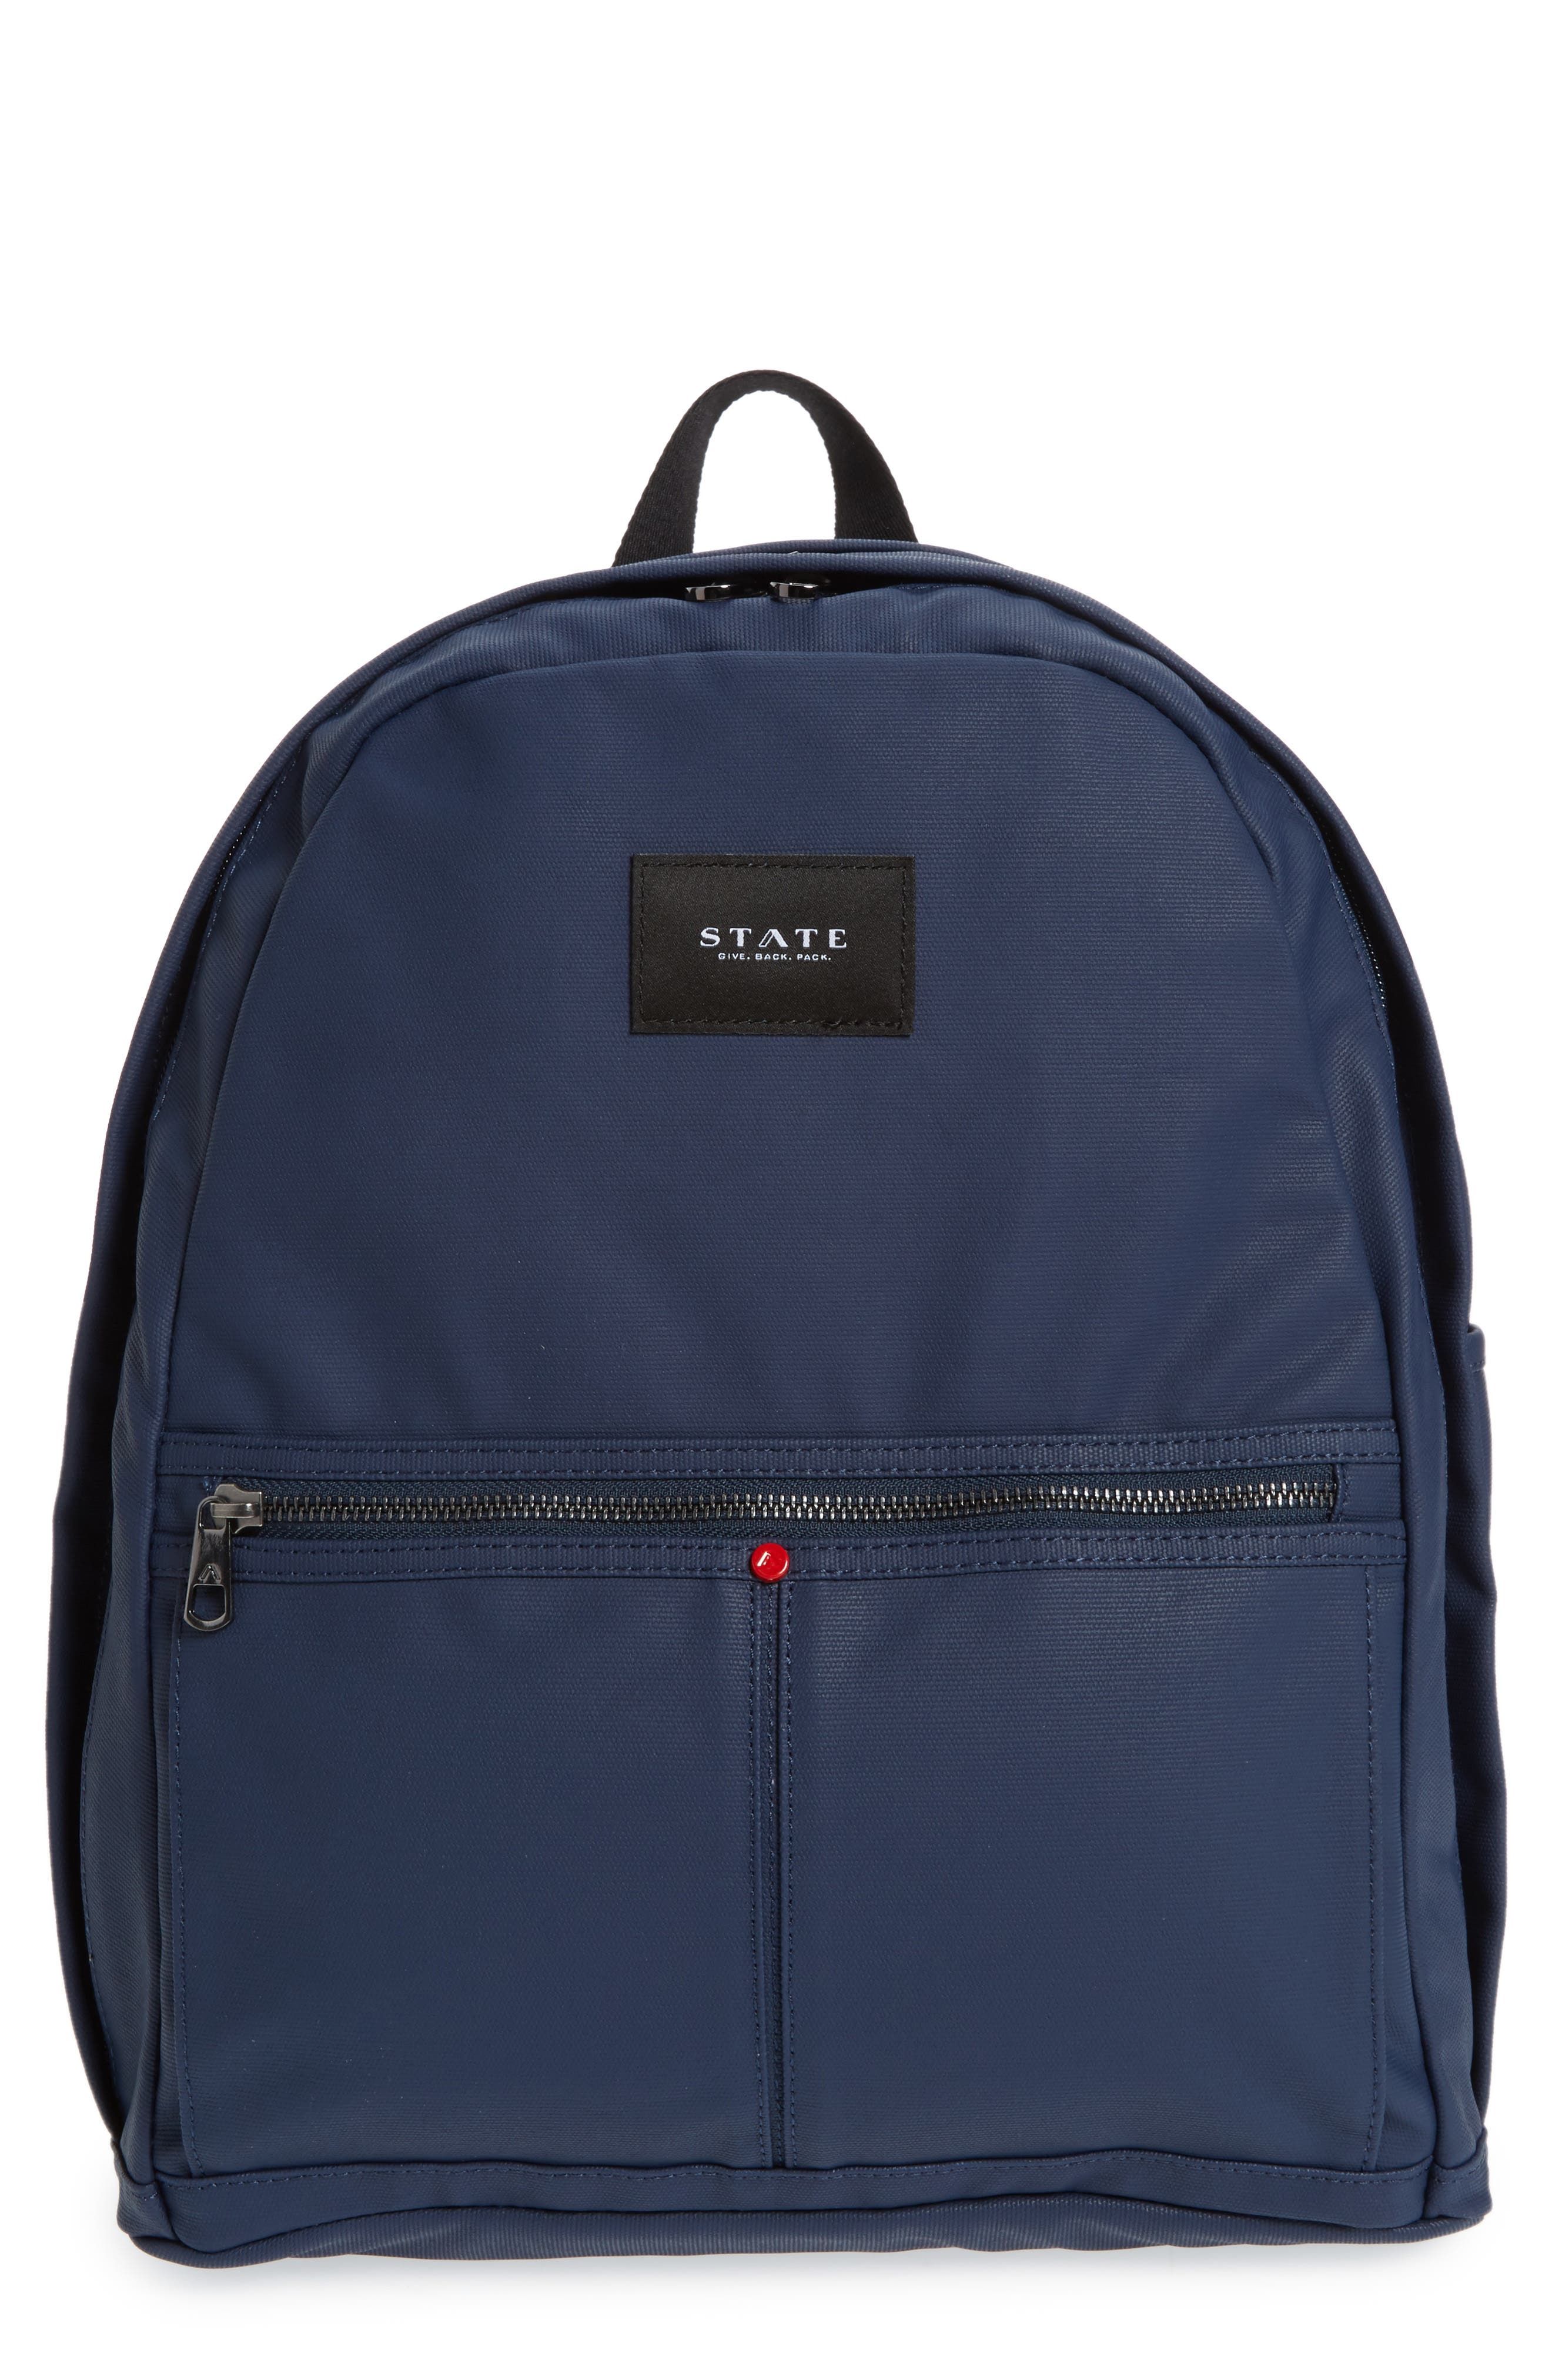 STATE Bags Greenpoint Kent Backpack